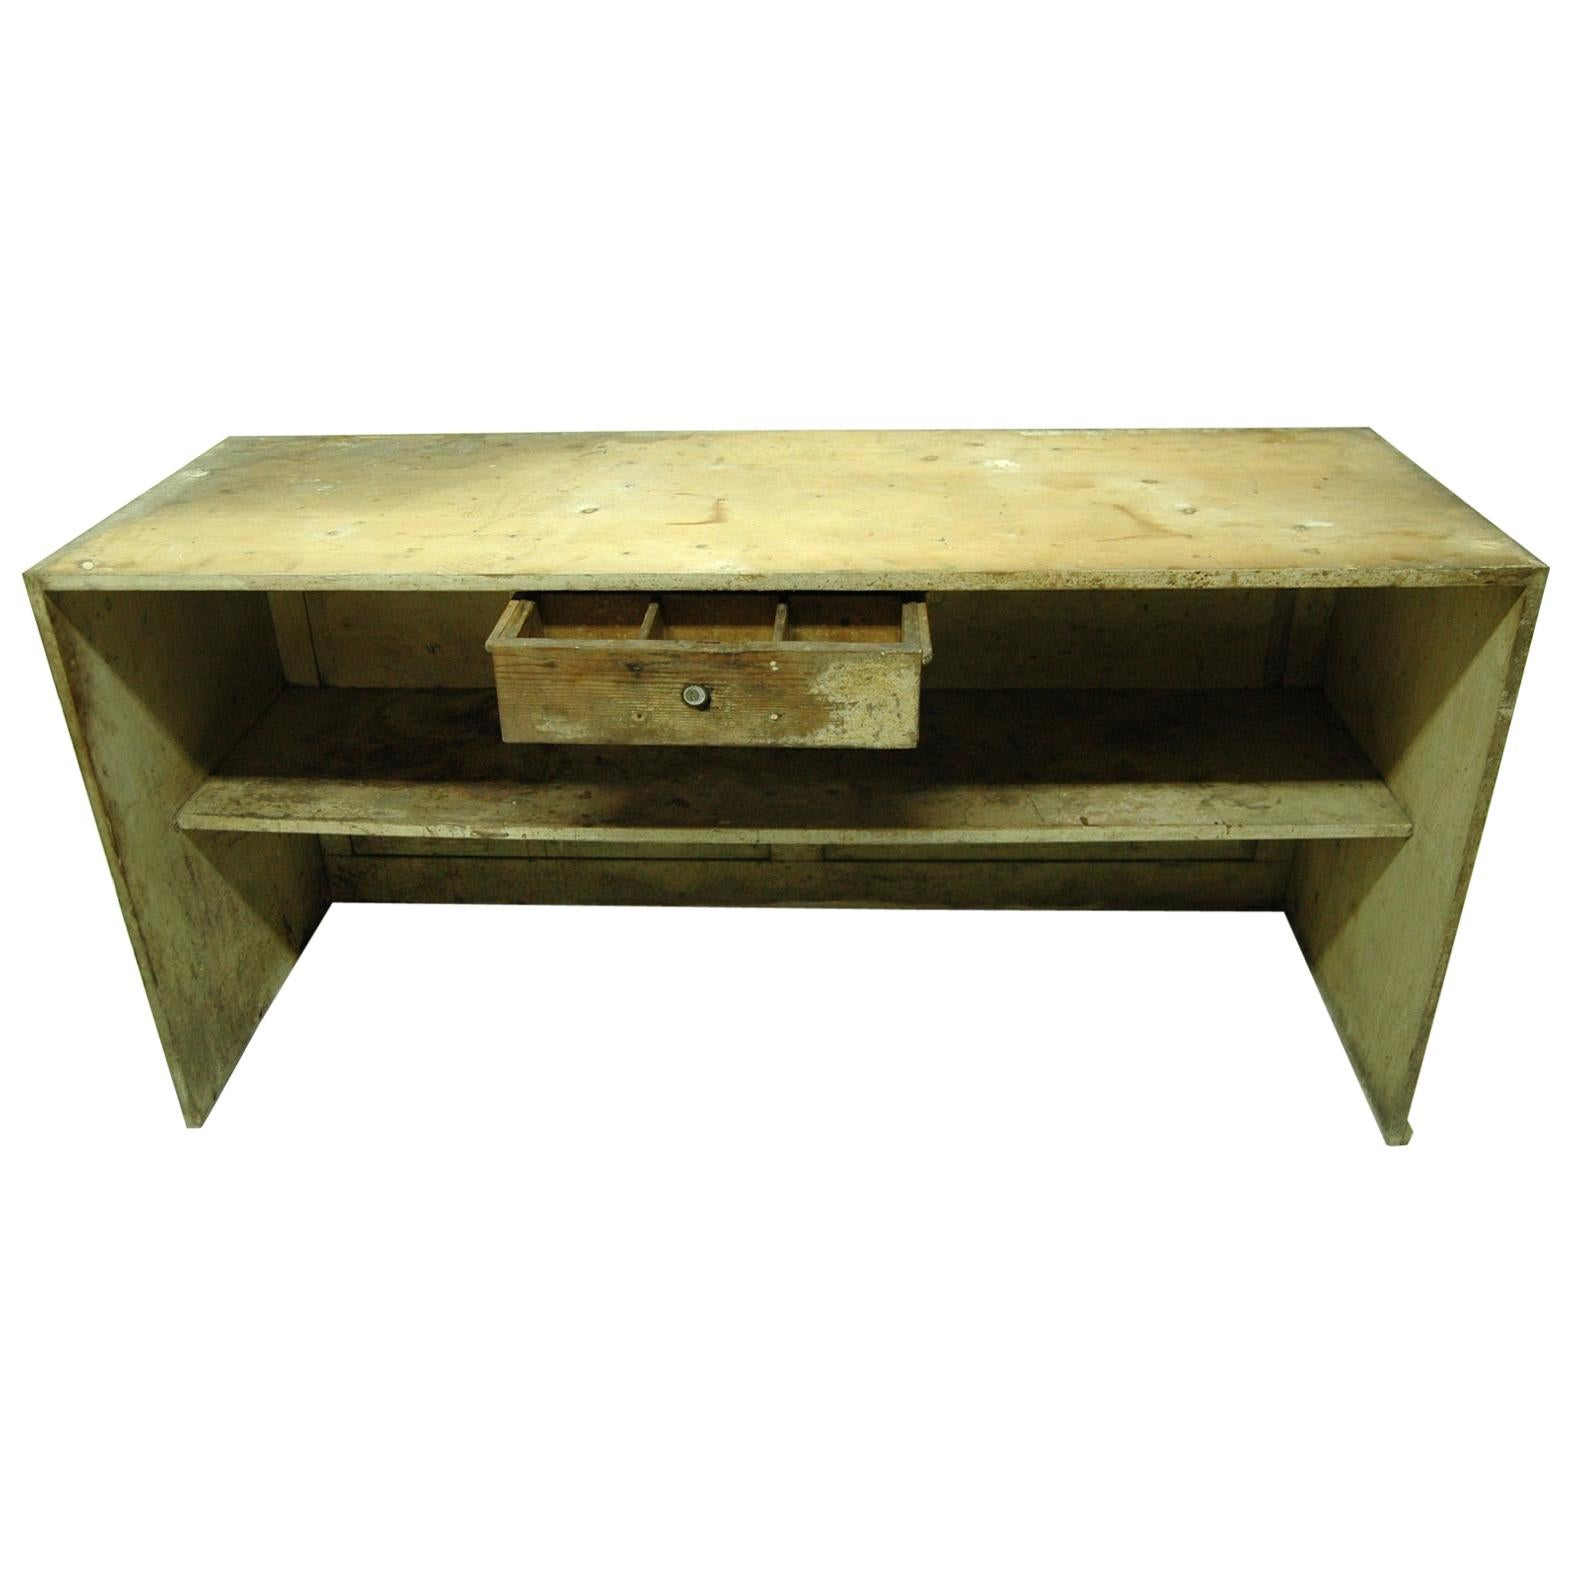 Antique Sales Counter, Work Table from the 1920s, Bohemia